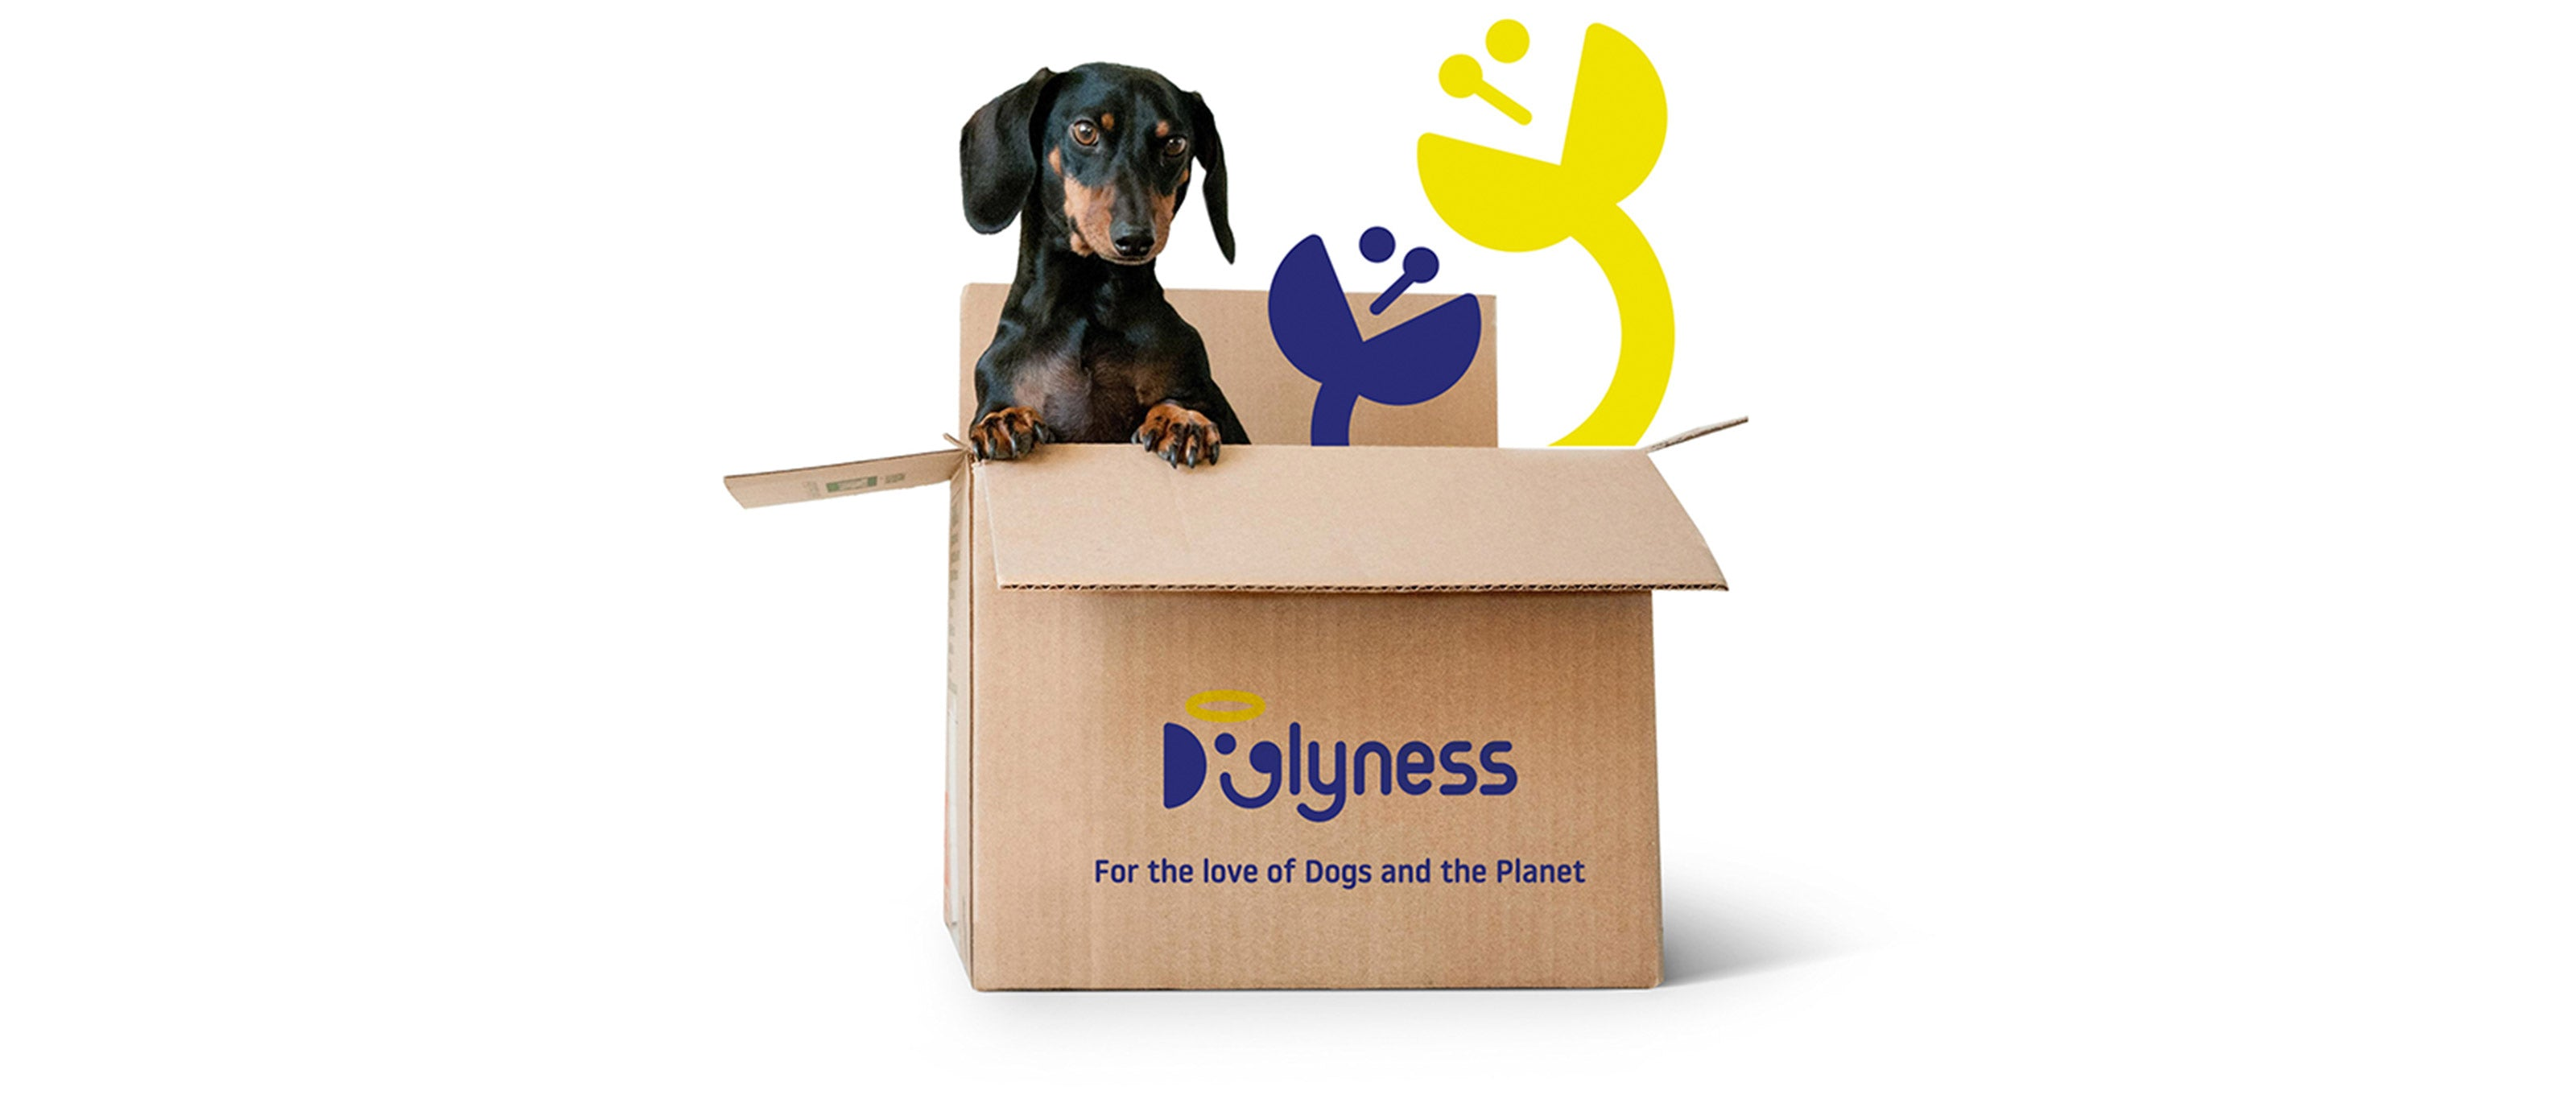 Doglyness, for the love of dogs and the planet!